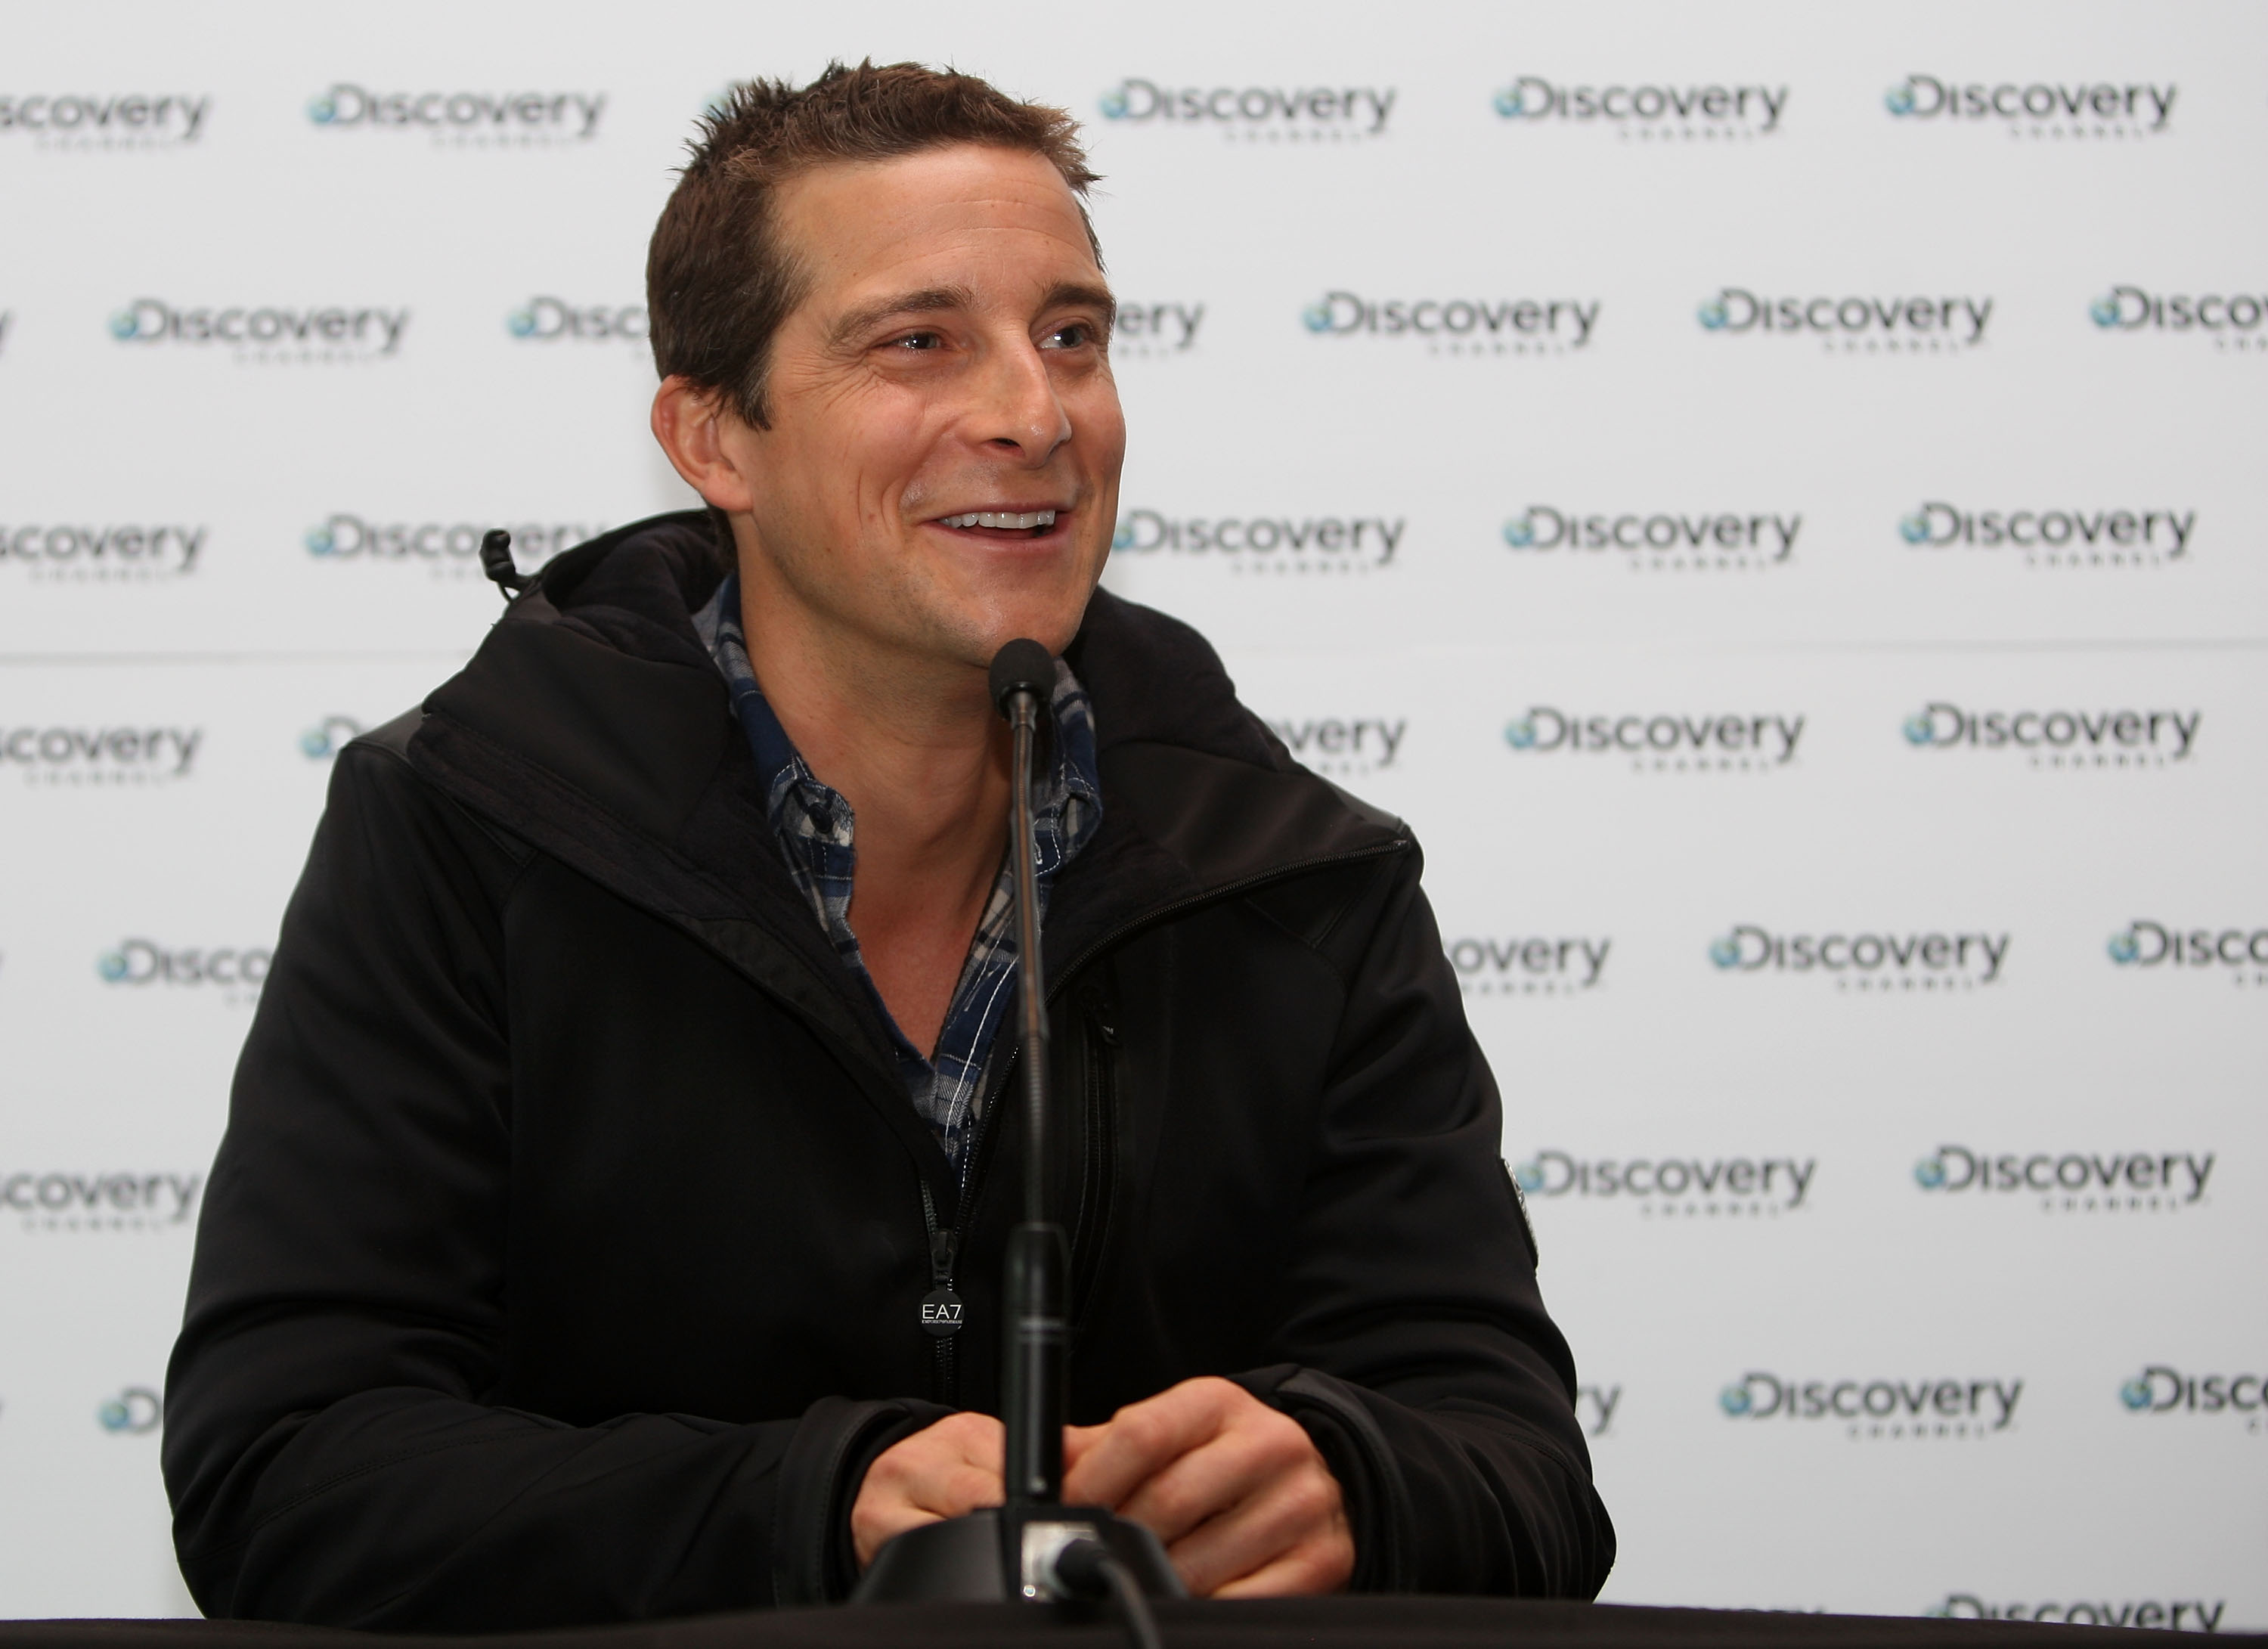 Bear Grylls 'runs wild' with celebrities in TV show (Video)